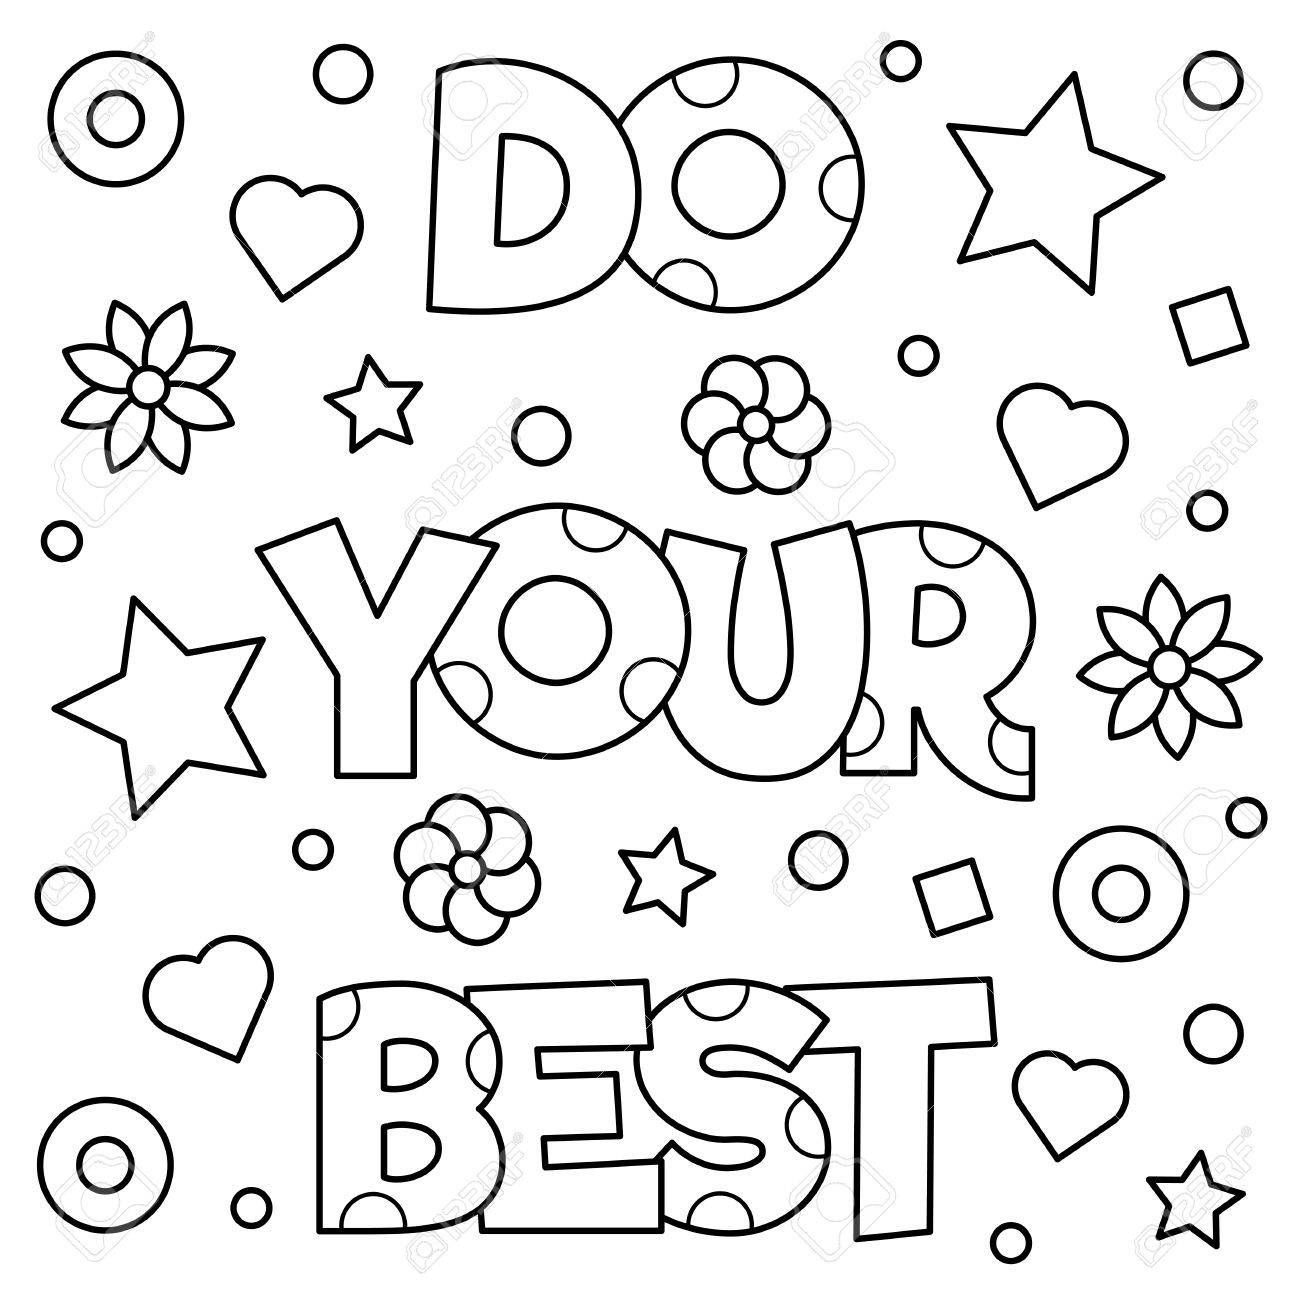 Do Your Best Coloring Page Vector Illustration Quote Coloring Pages Coloring Pages Inspirational Free Coloring Pages